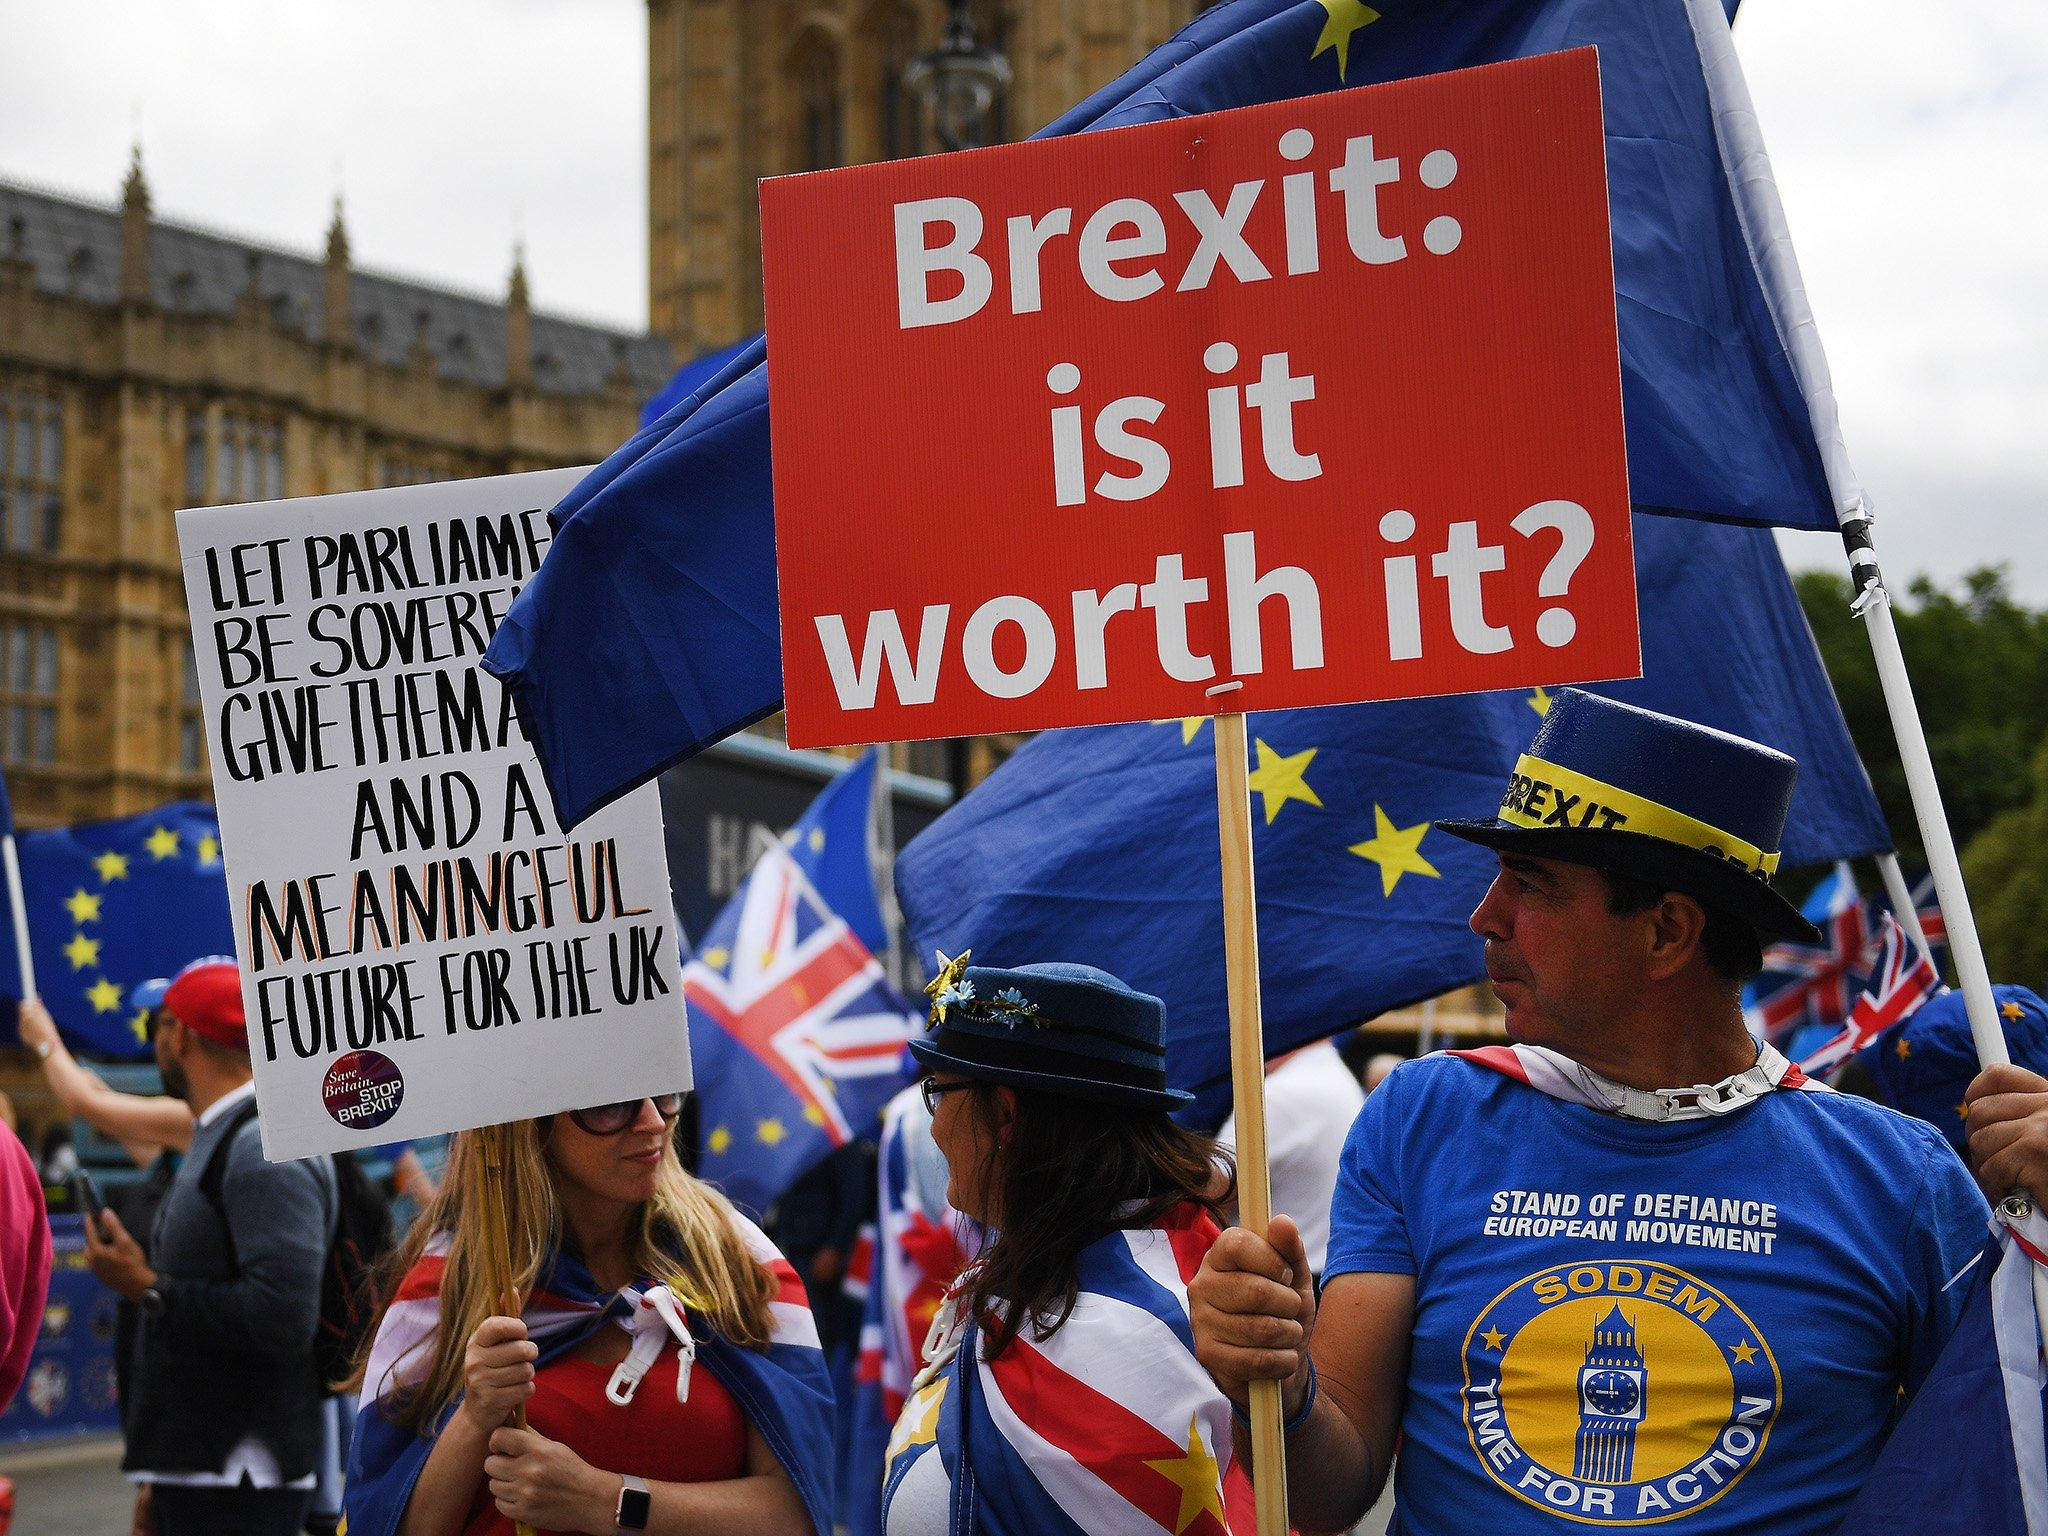 Final Say: More than 100,000 protesters expected in London to lead largest anti-Brexit demonstration to date